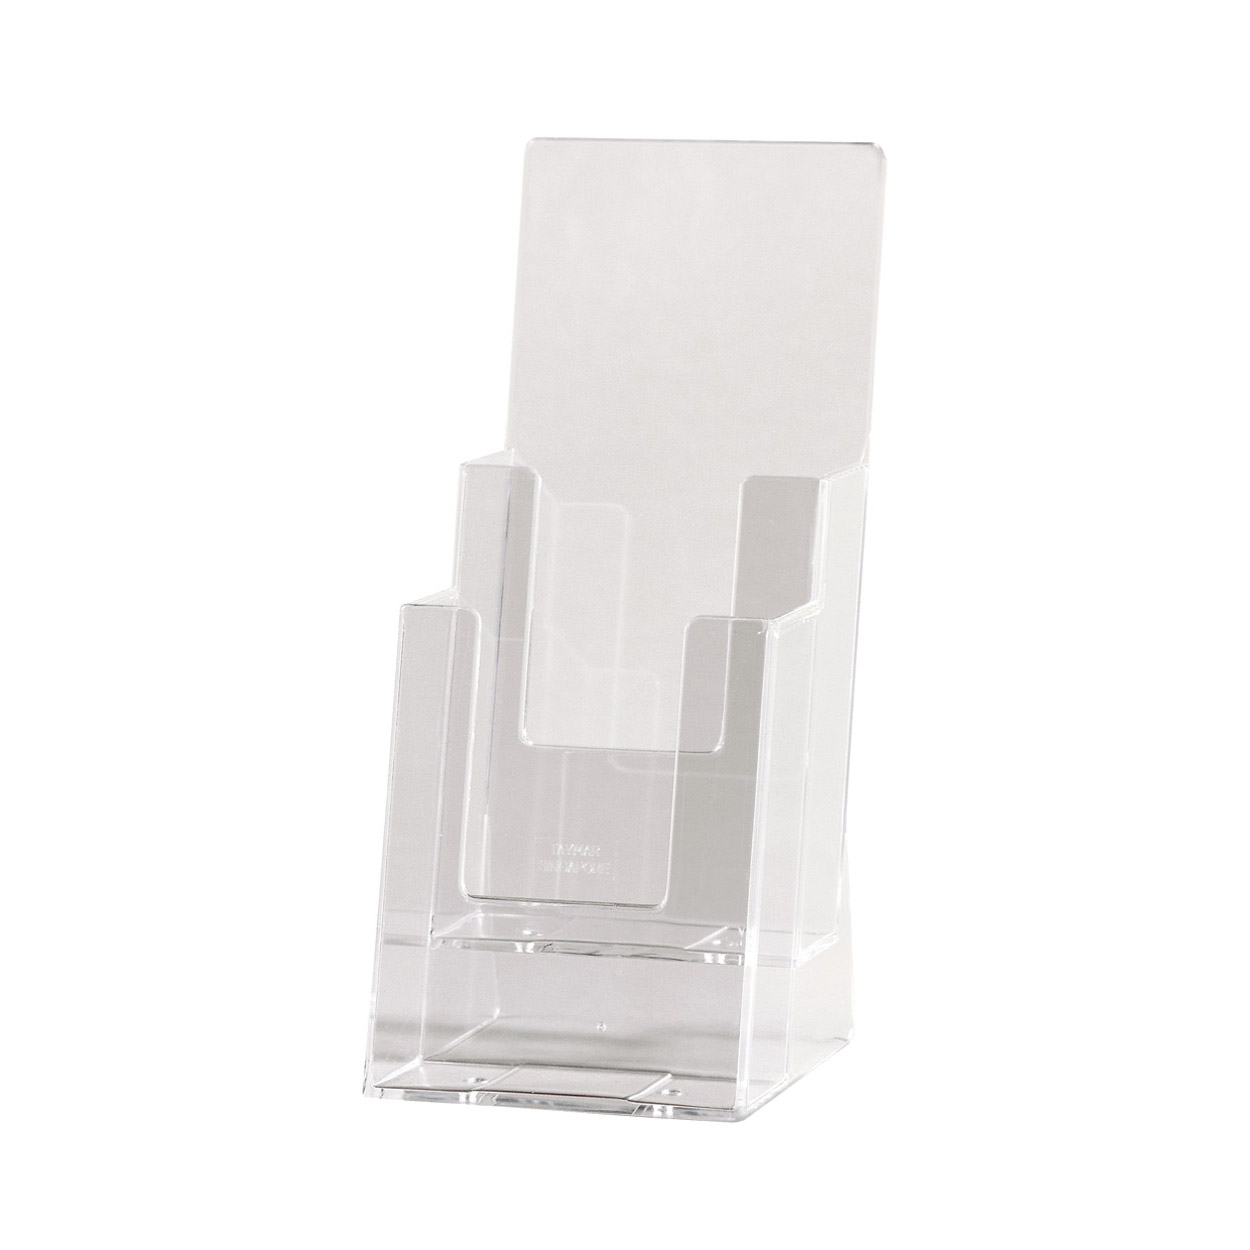 Acrylic Freestanding brochure holder Double Level DL Size. Dimension 210 H x 115 W x 105mm D